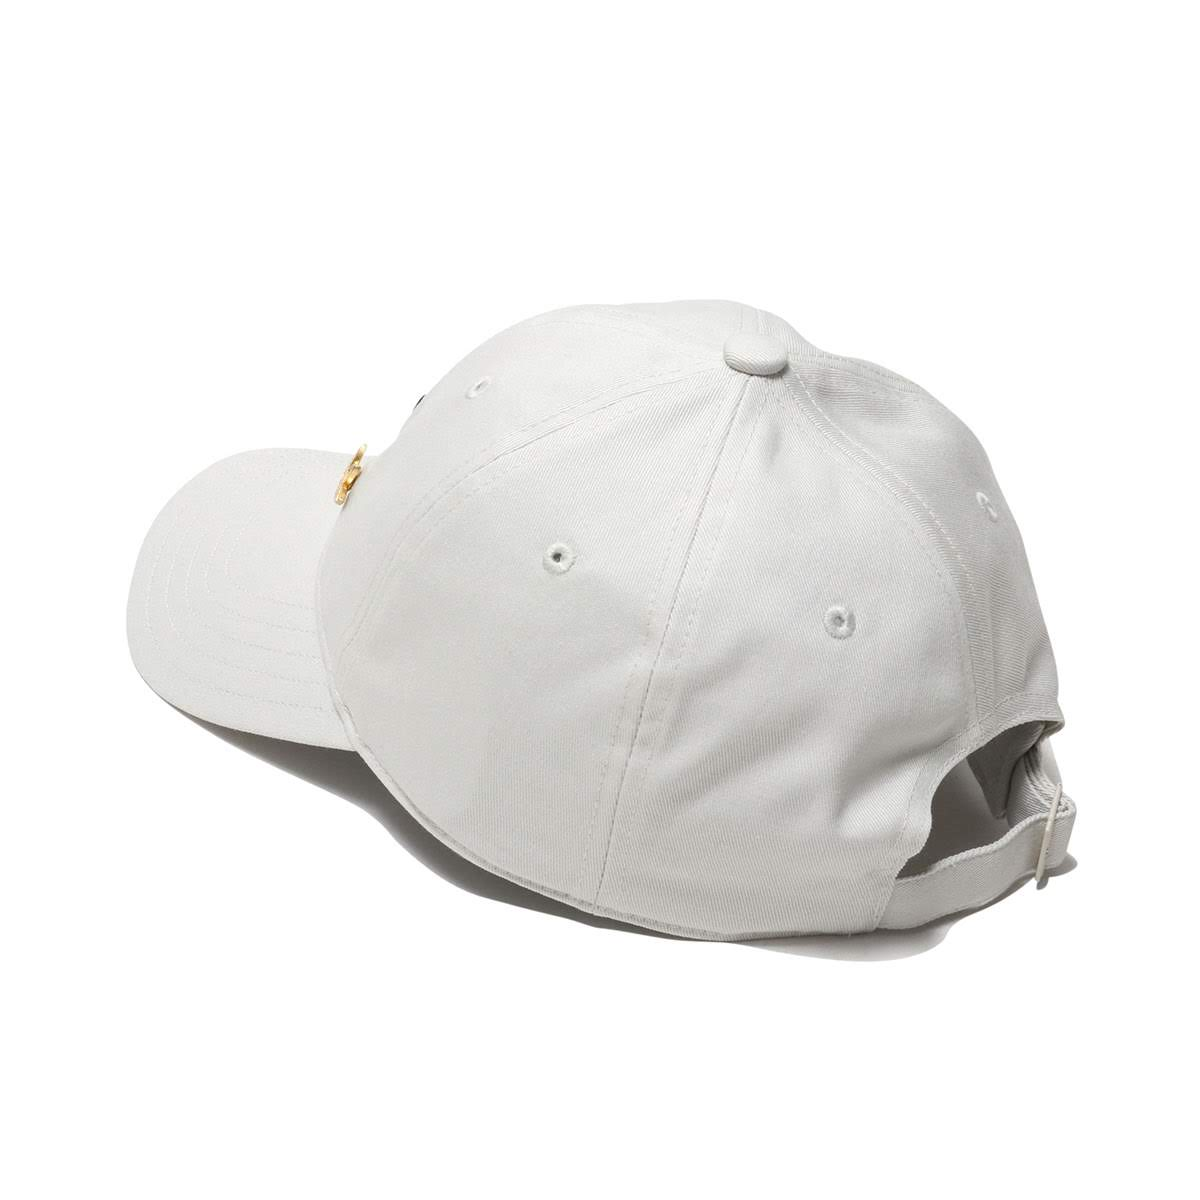 8d5885fec adidas Originals SAMSTAG DAD CAP(RAW WHITE/WHITE/GOLDMET)(アディダスオリジナルス サムスタグ  ダッド ...